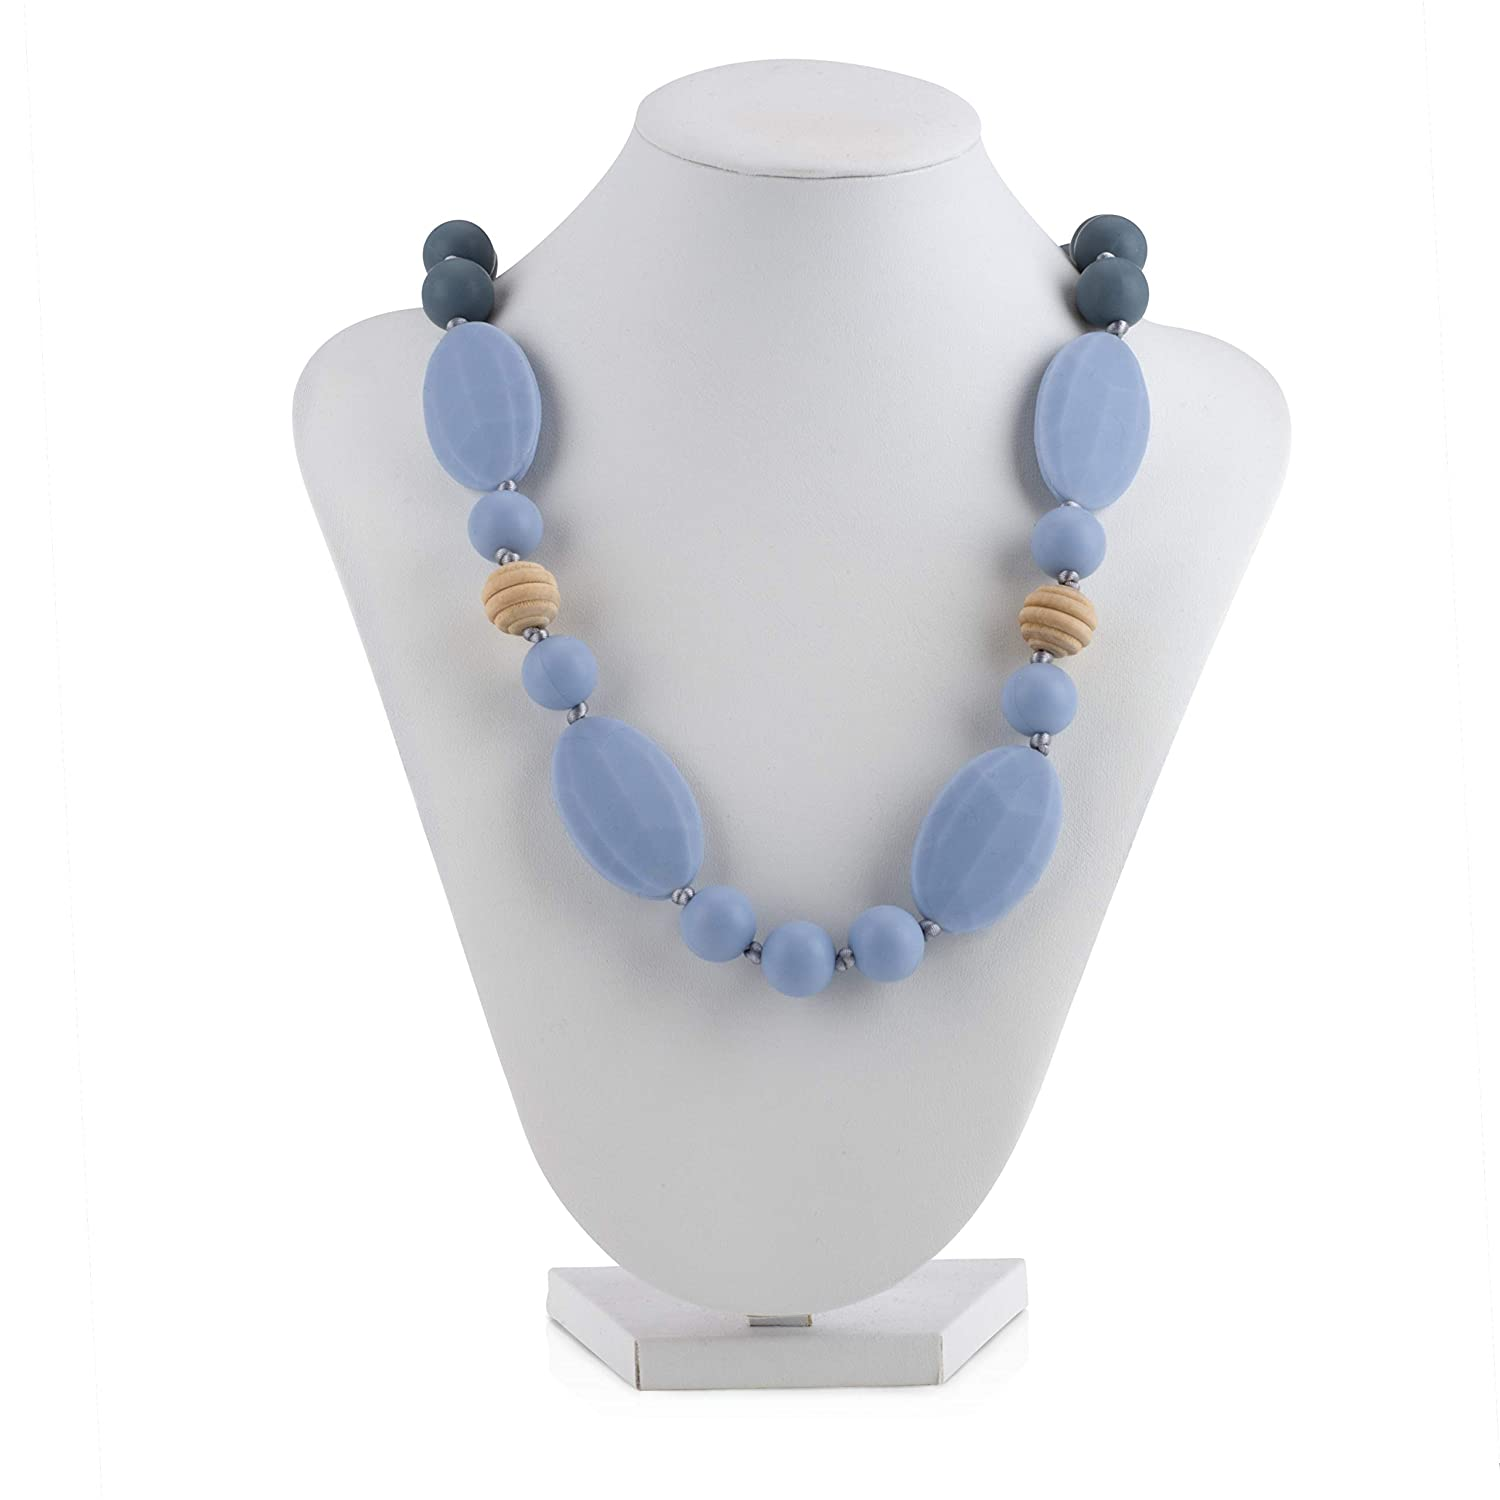 Nuby Baby Teething Trends Necklace for Moms with Oval, Round, Wooden Beads